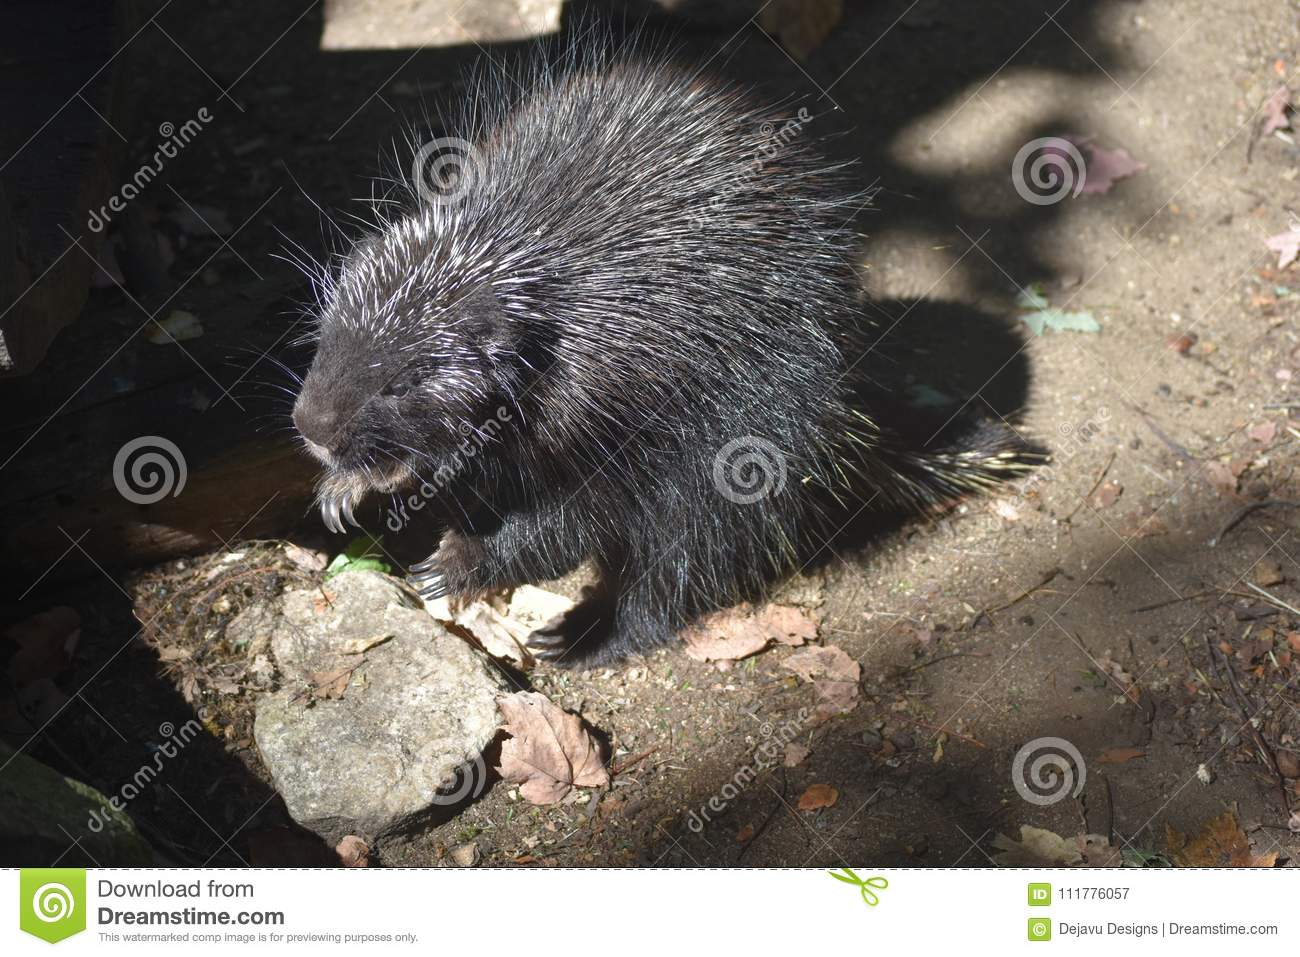 Large black porcupine on its hind legs with an open mouth